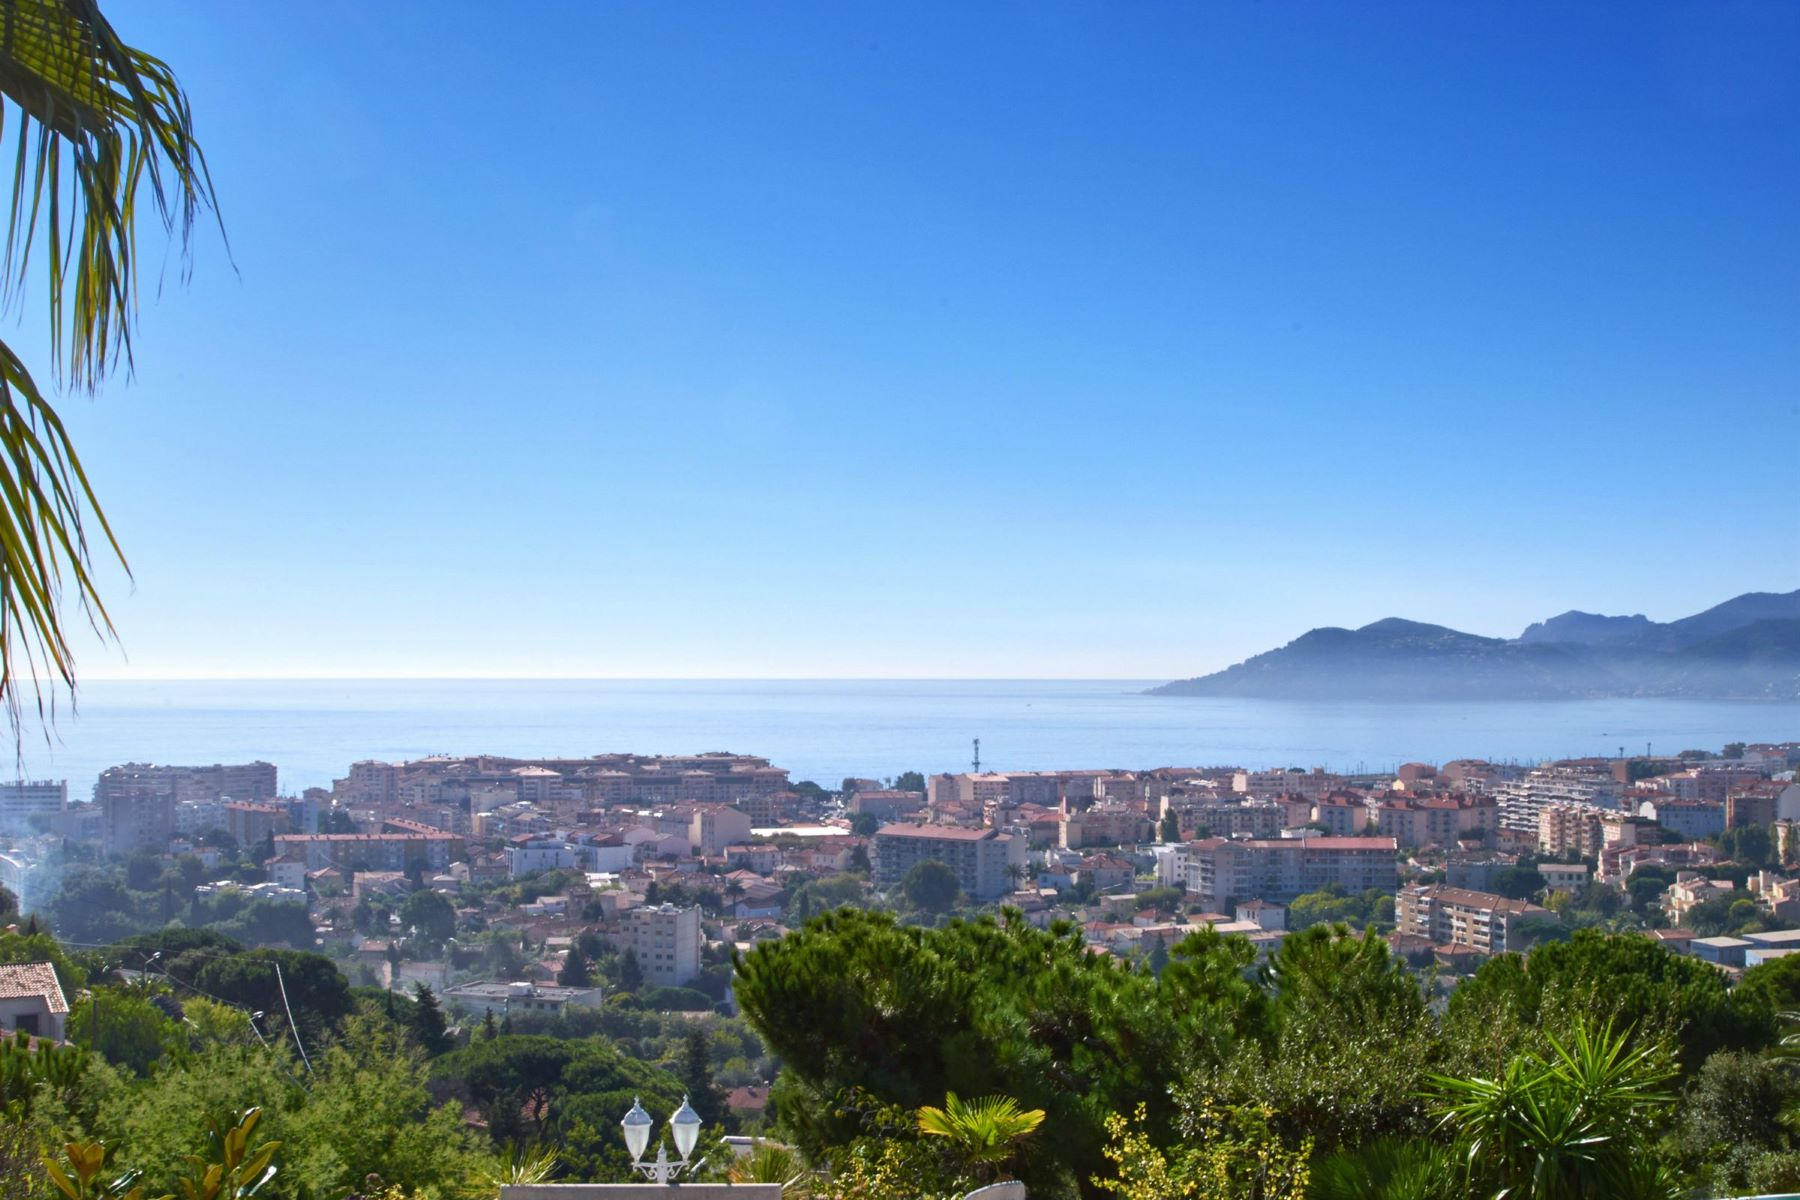 Single Family Home for Sale at Cannes - Panoramic sea views Cannes La Bocca, Provence-Alpes-Cote D'Azur, 06150 France